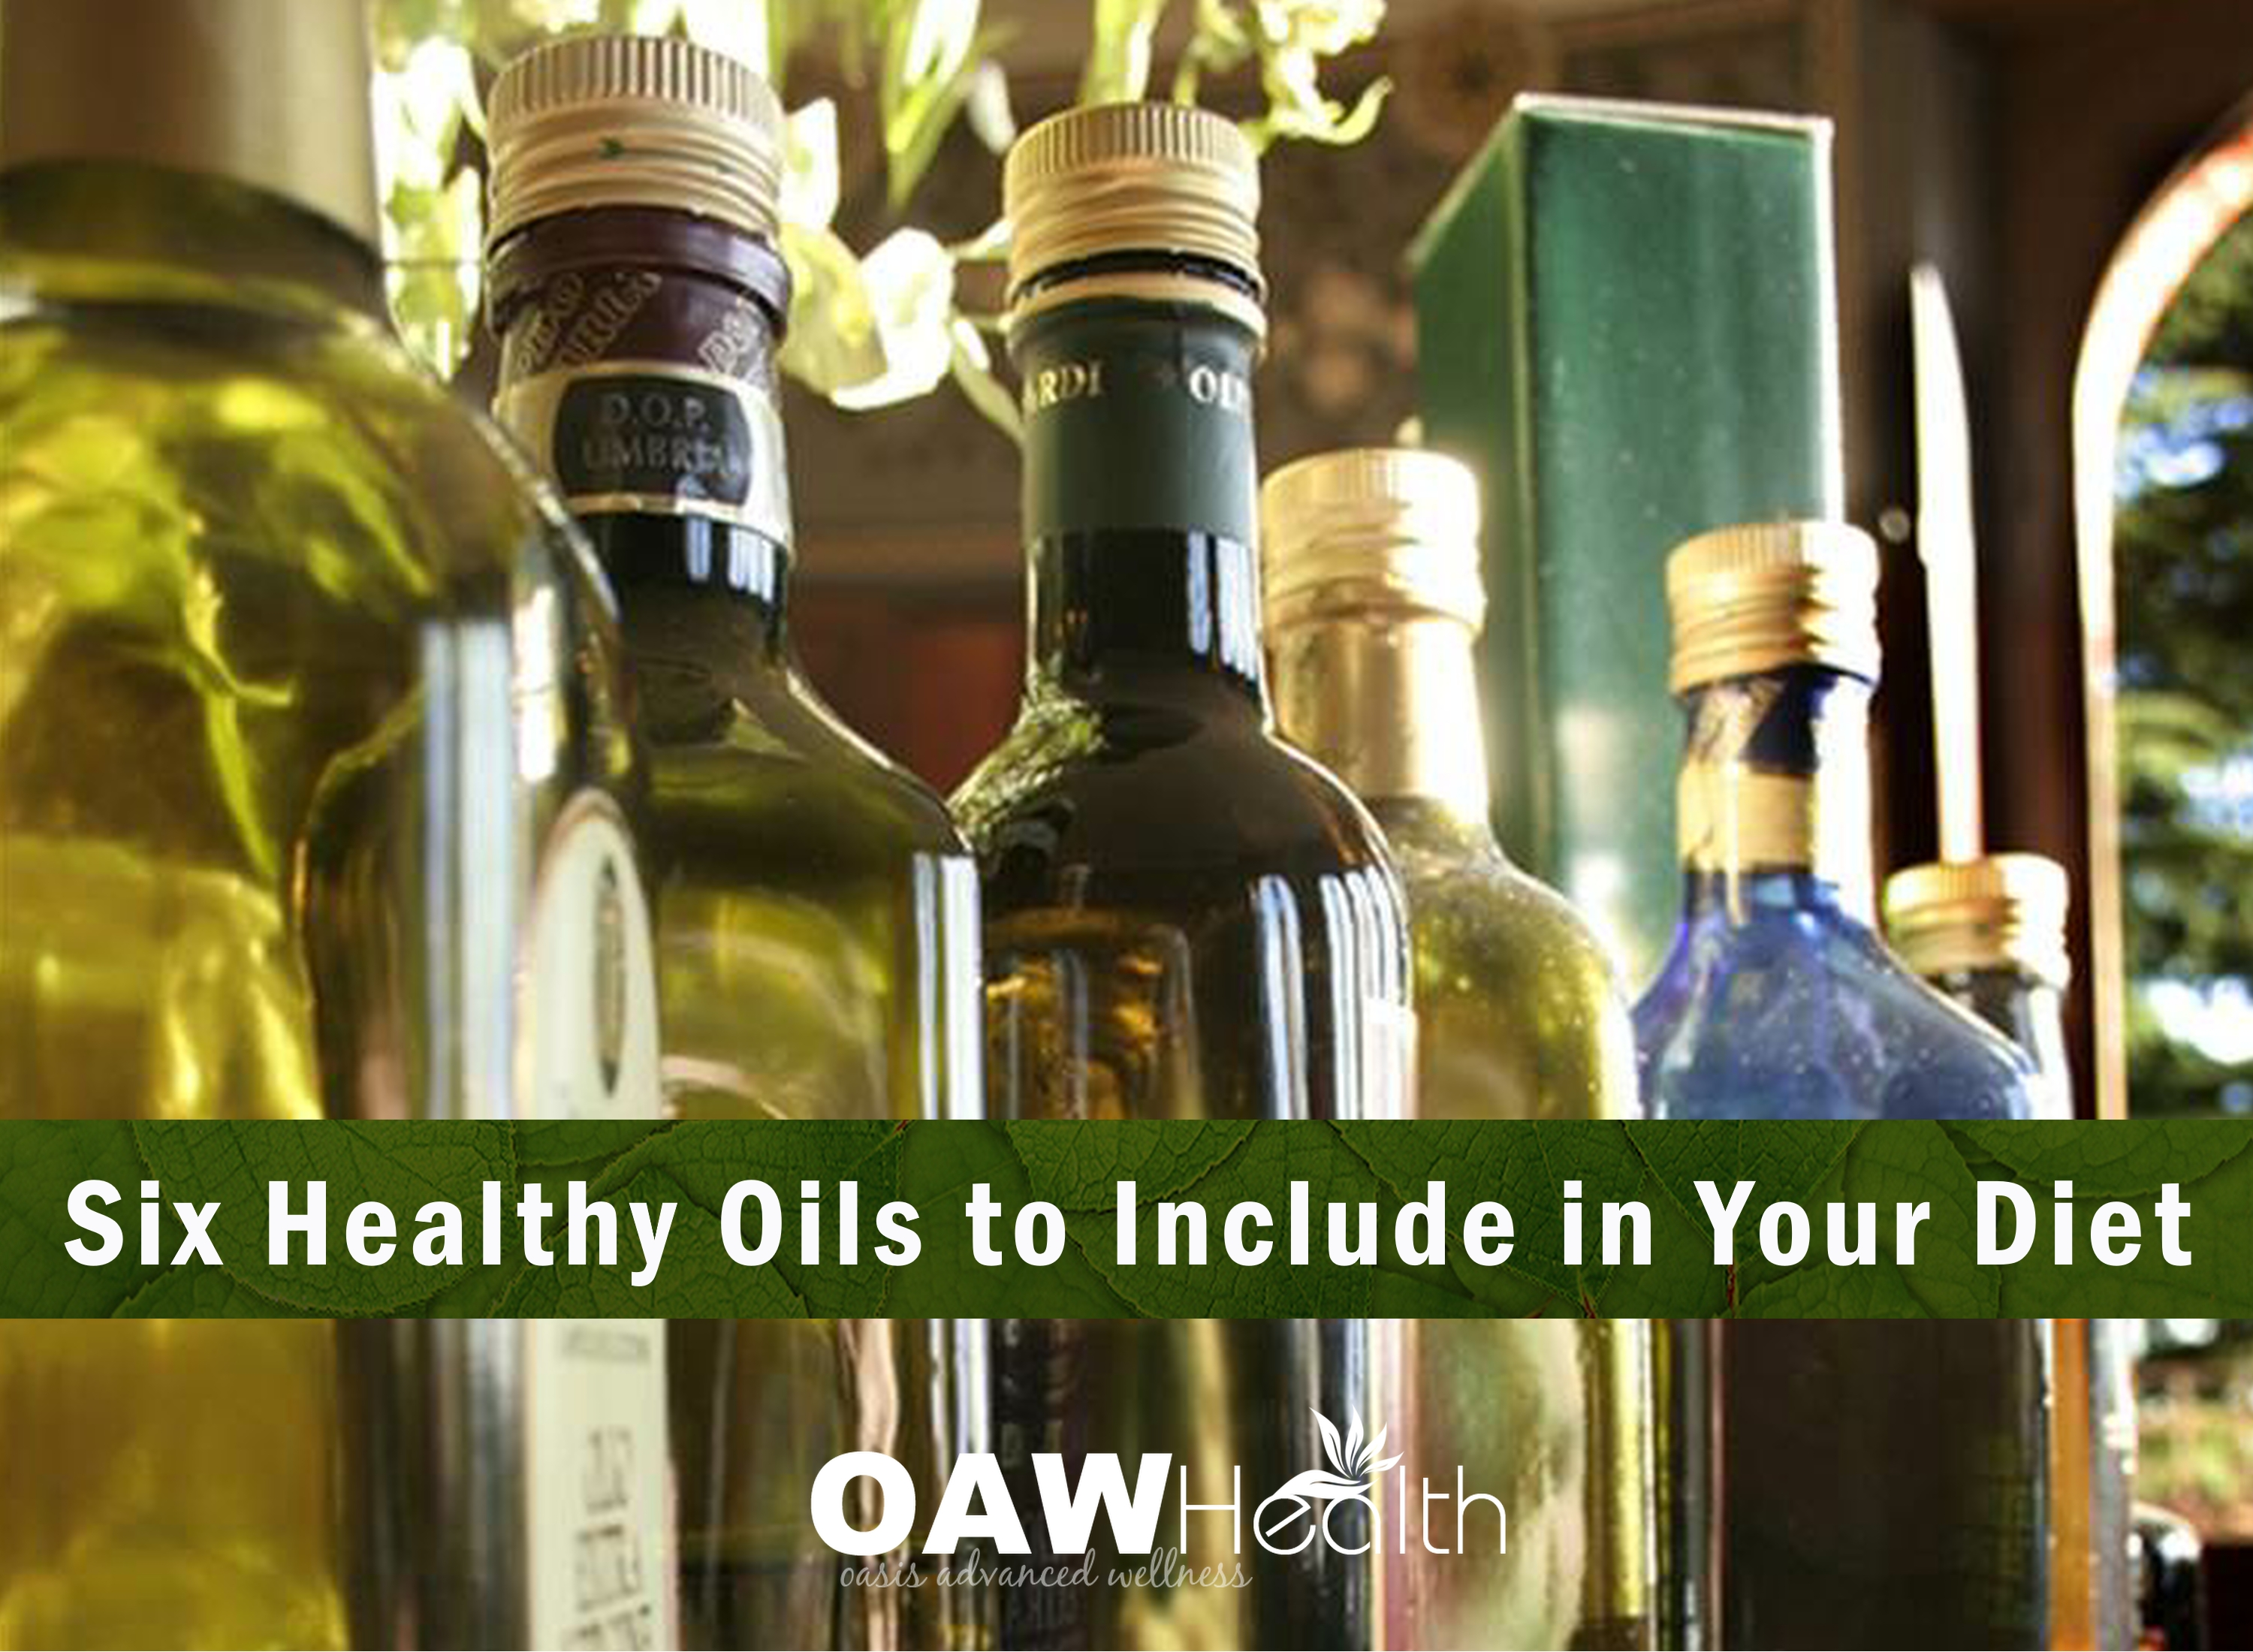 Six Healthy Oils to Include in Your Diet